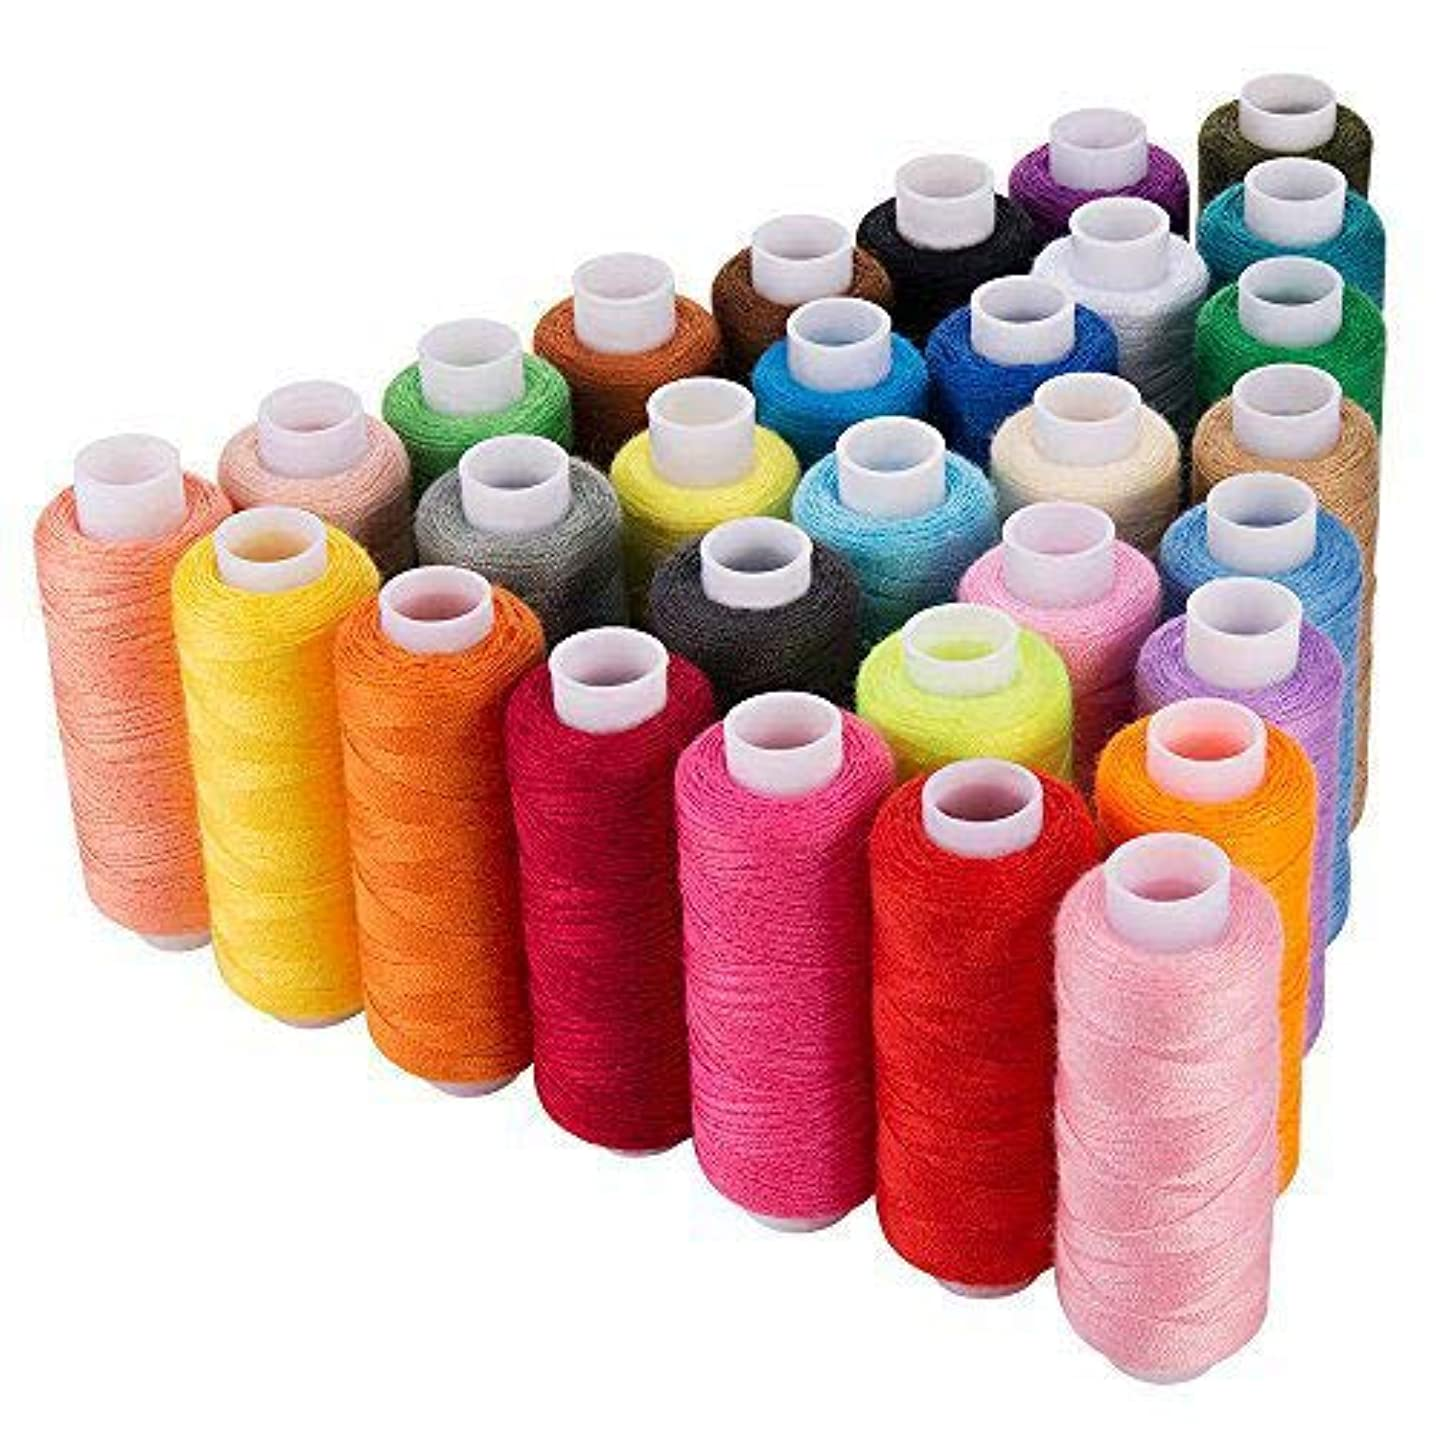 CiaraQ Sewing Thread 30 Colors 250 Yards Polyester Each Thread Spools for Sewing Machine Embroidery Use